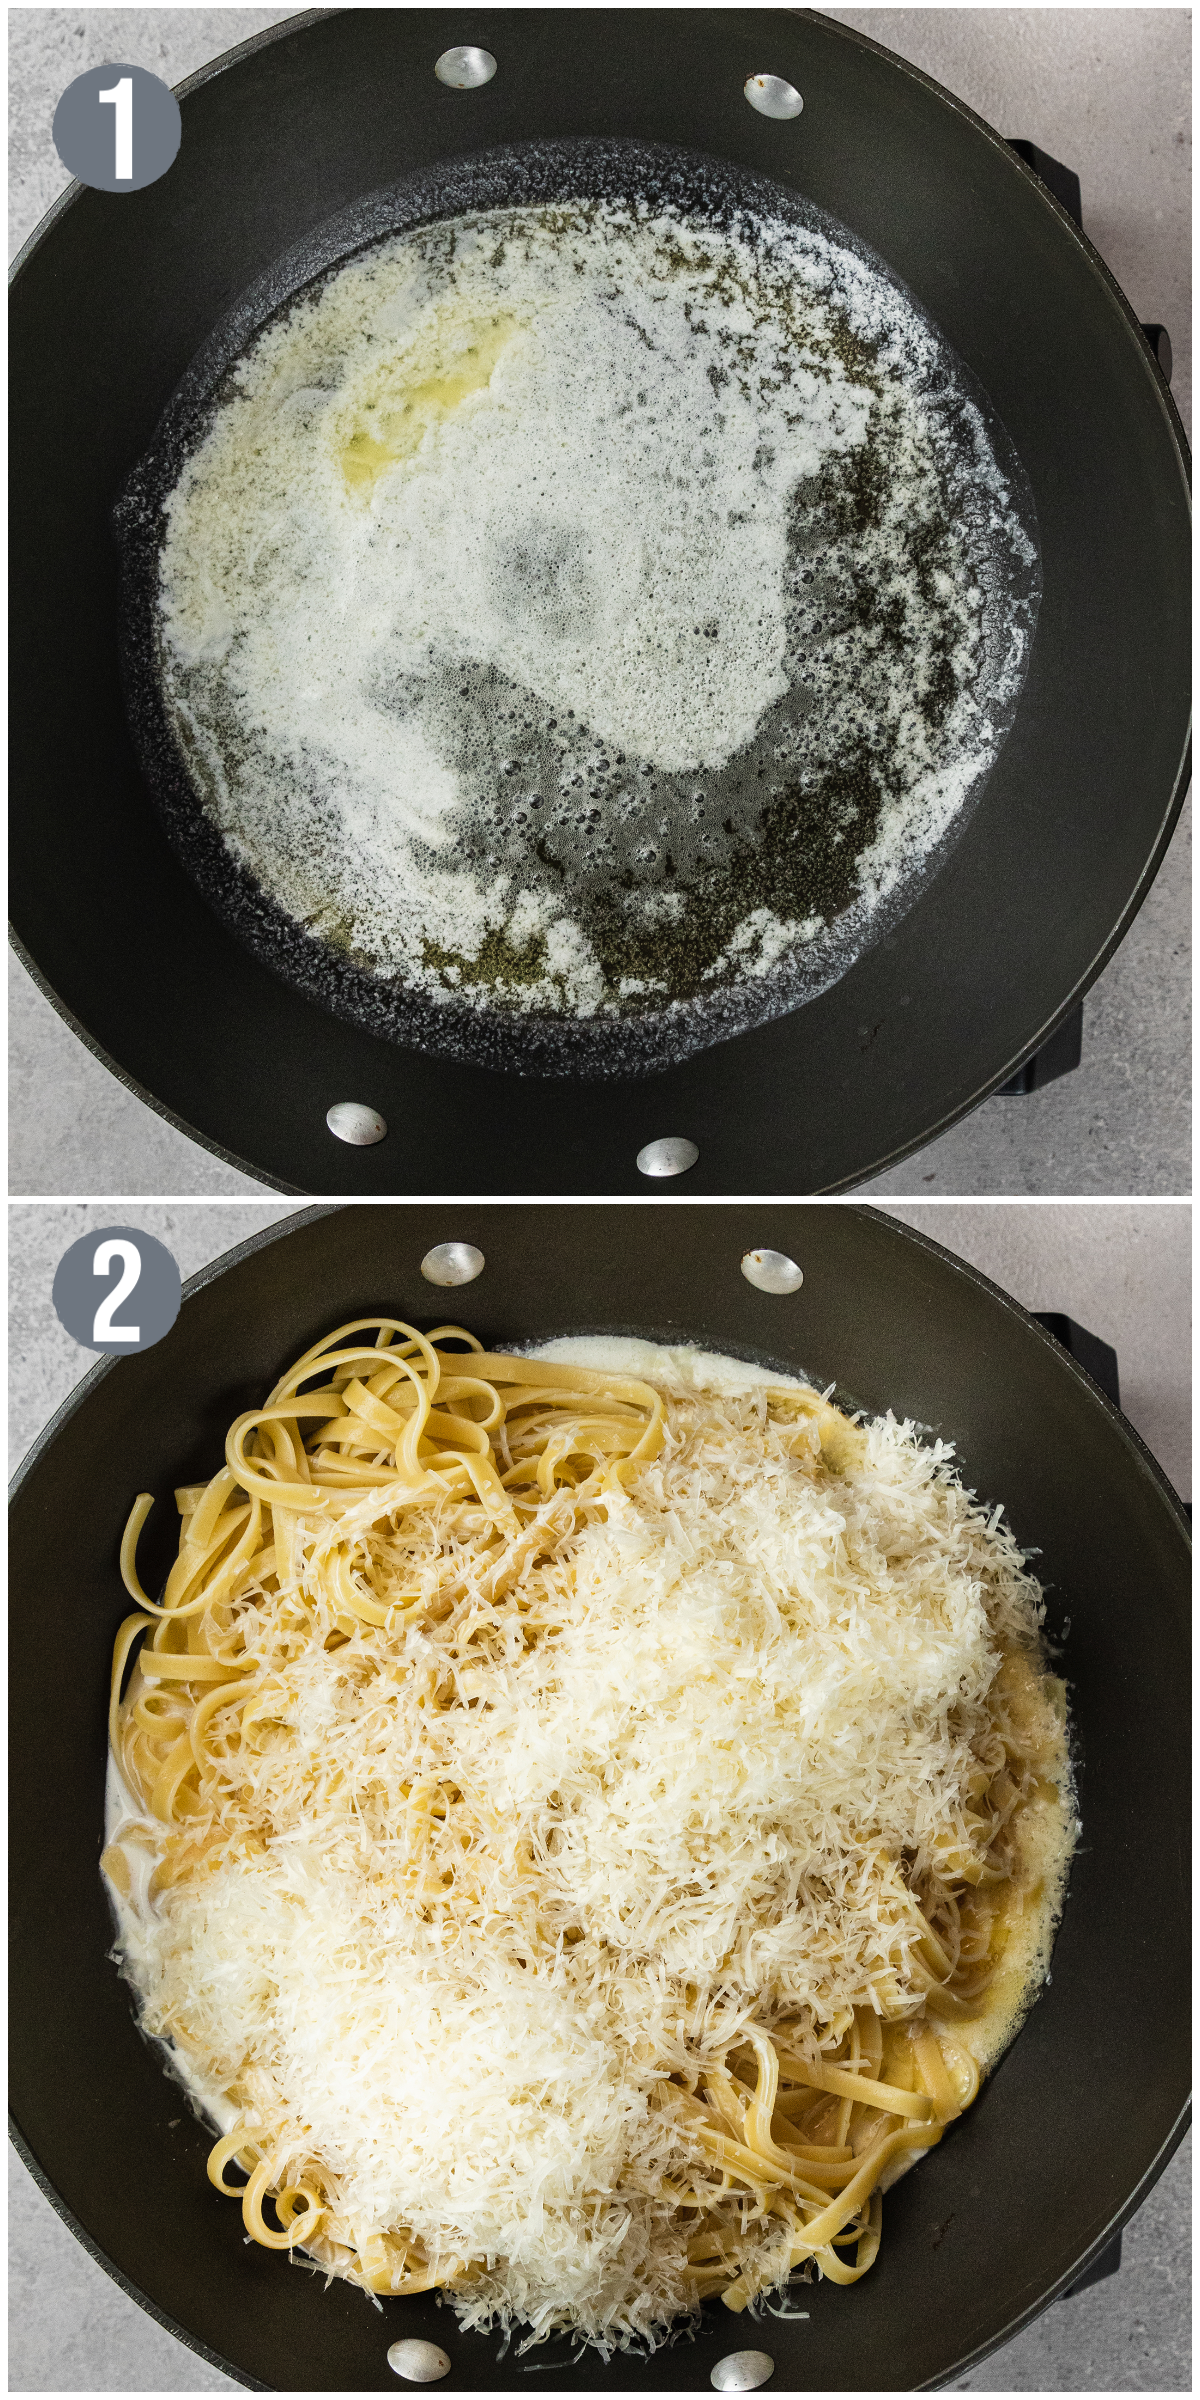 images showing a pan melting butter and a pan combining ingredients of fettuccine alfredo